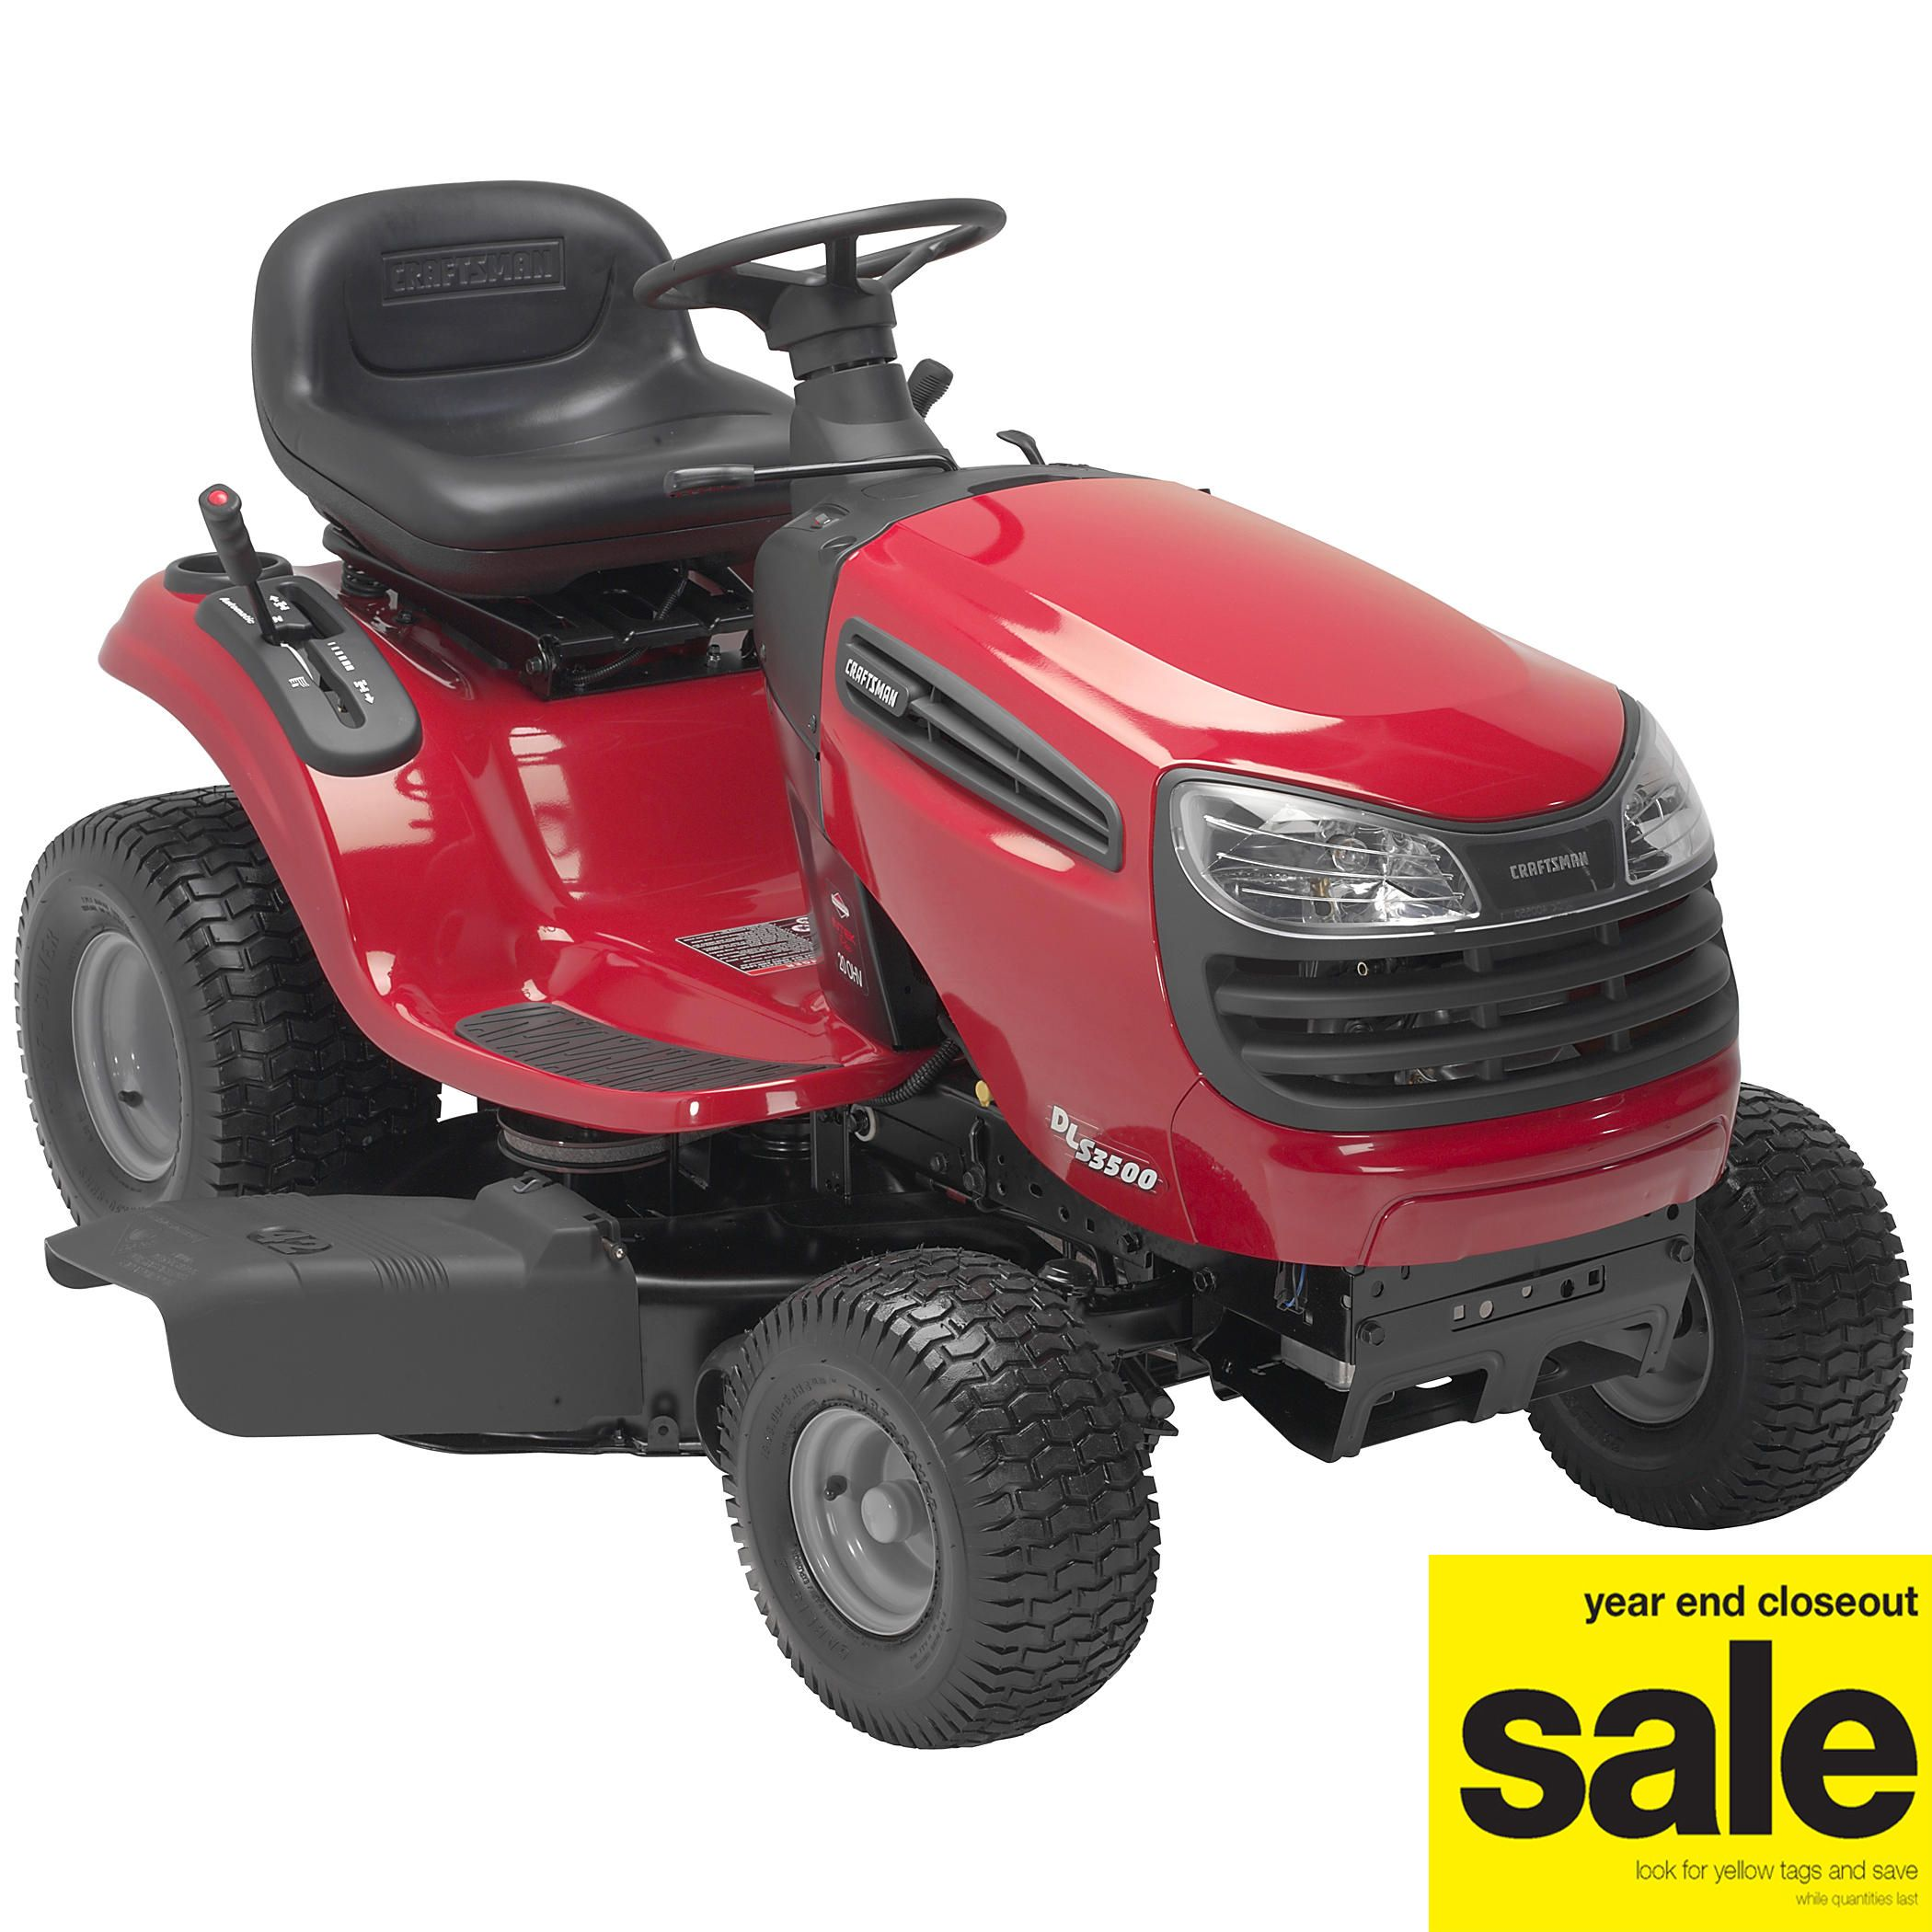 Craftsman 20 Hp 42 In. Deck Dls 3500 Lawn Tractor - & Garden Riding Mowers Tractors